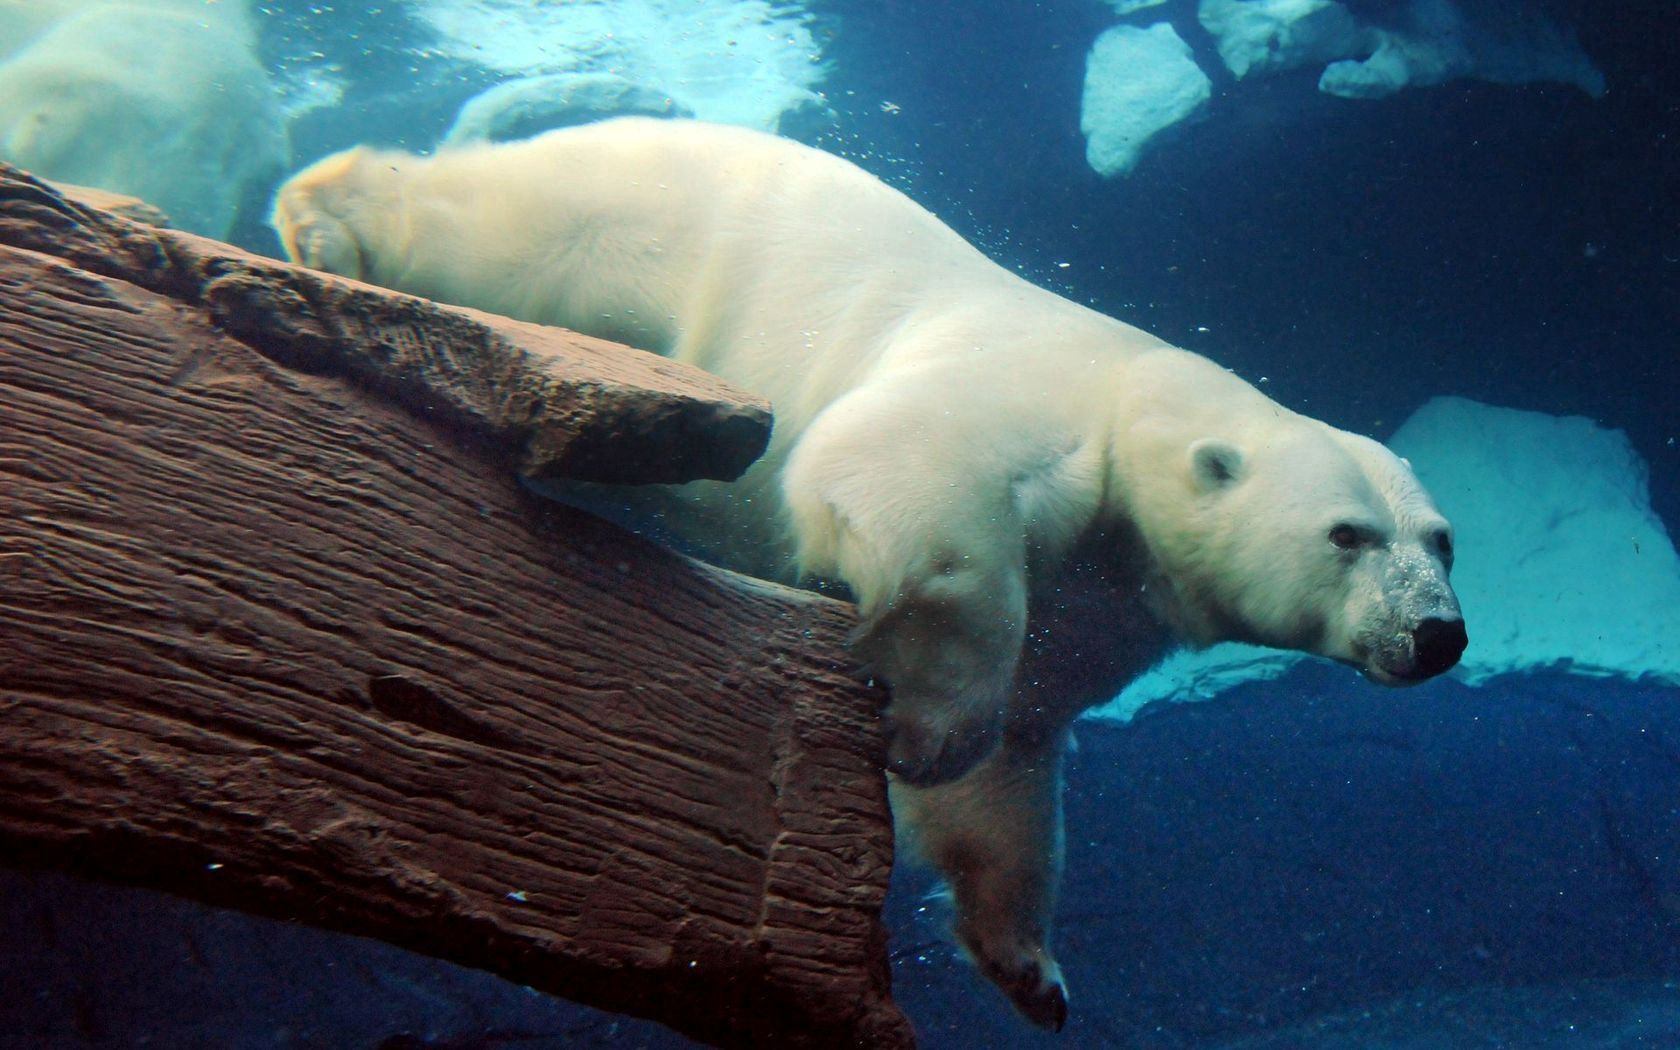 122023 download wallpaper Animals, Polar Bear, Underwater, Submarine, To Swim, Swim, Large, Big screensavers and pictures for free